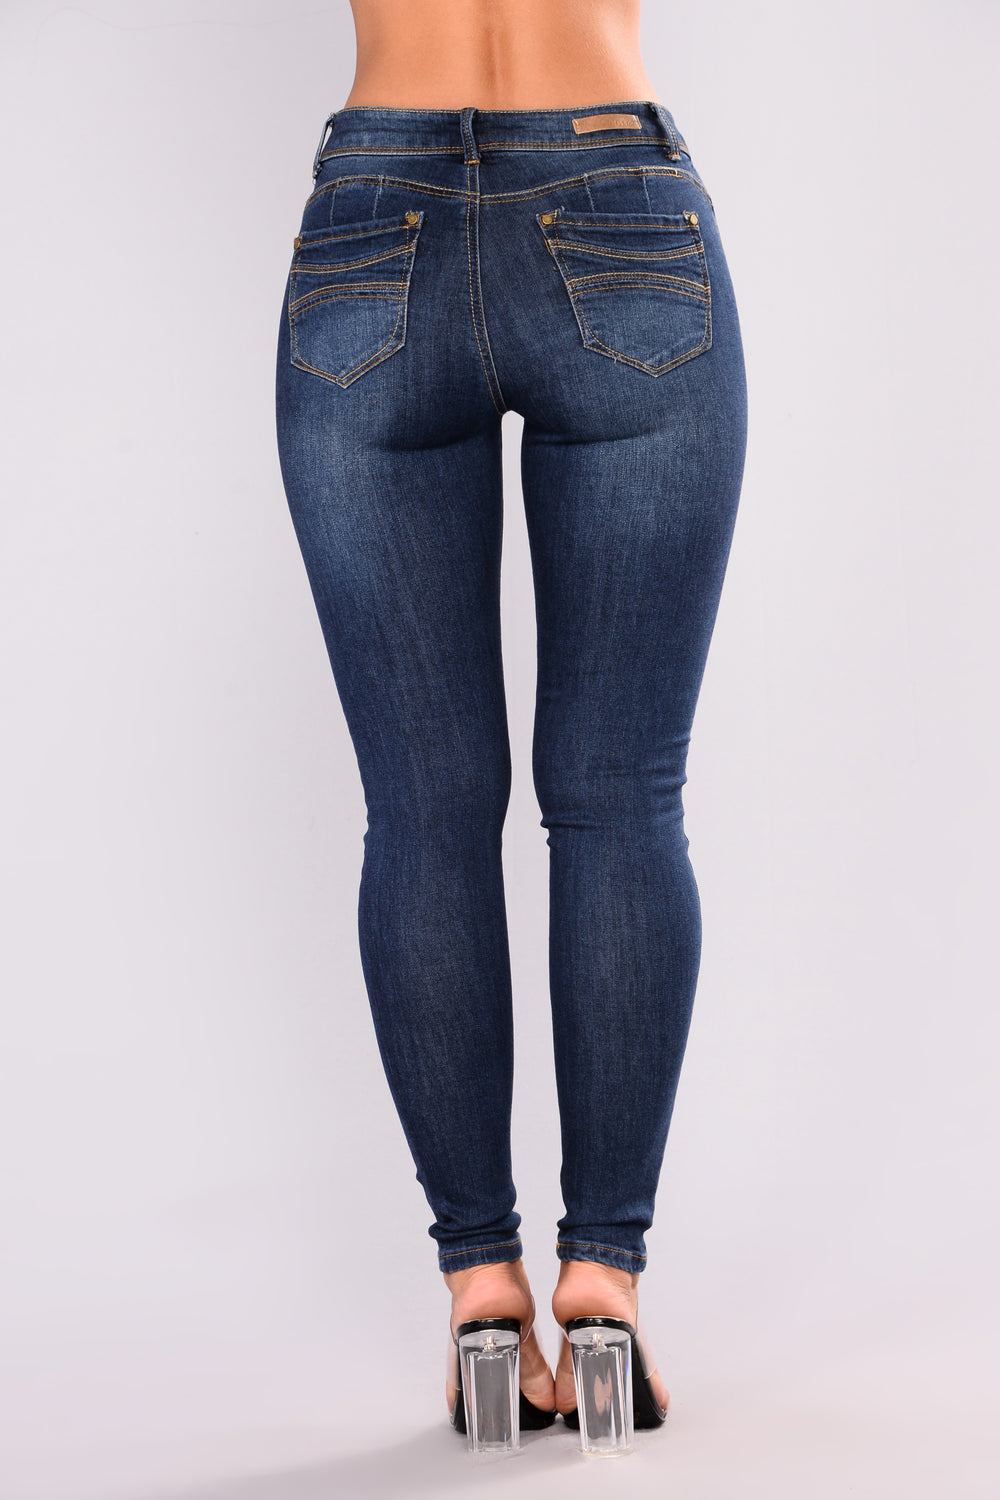 Rear In Gear Booty Lifting Jeans - Dark Denim